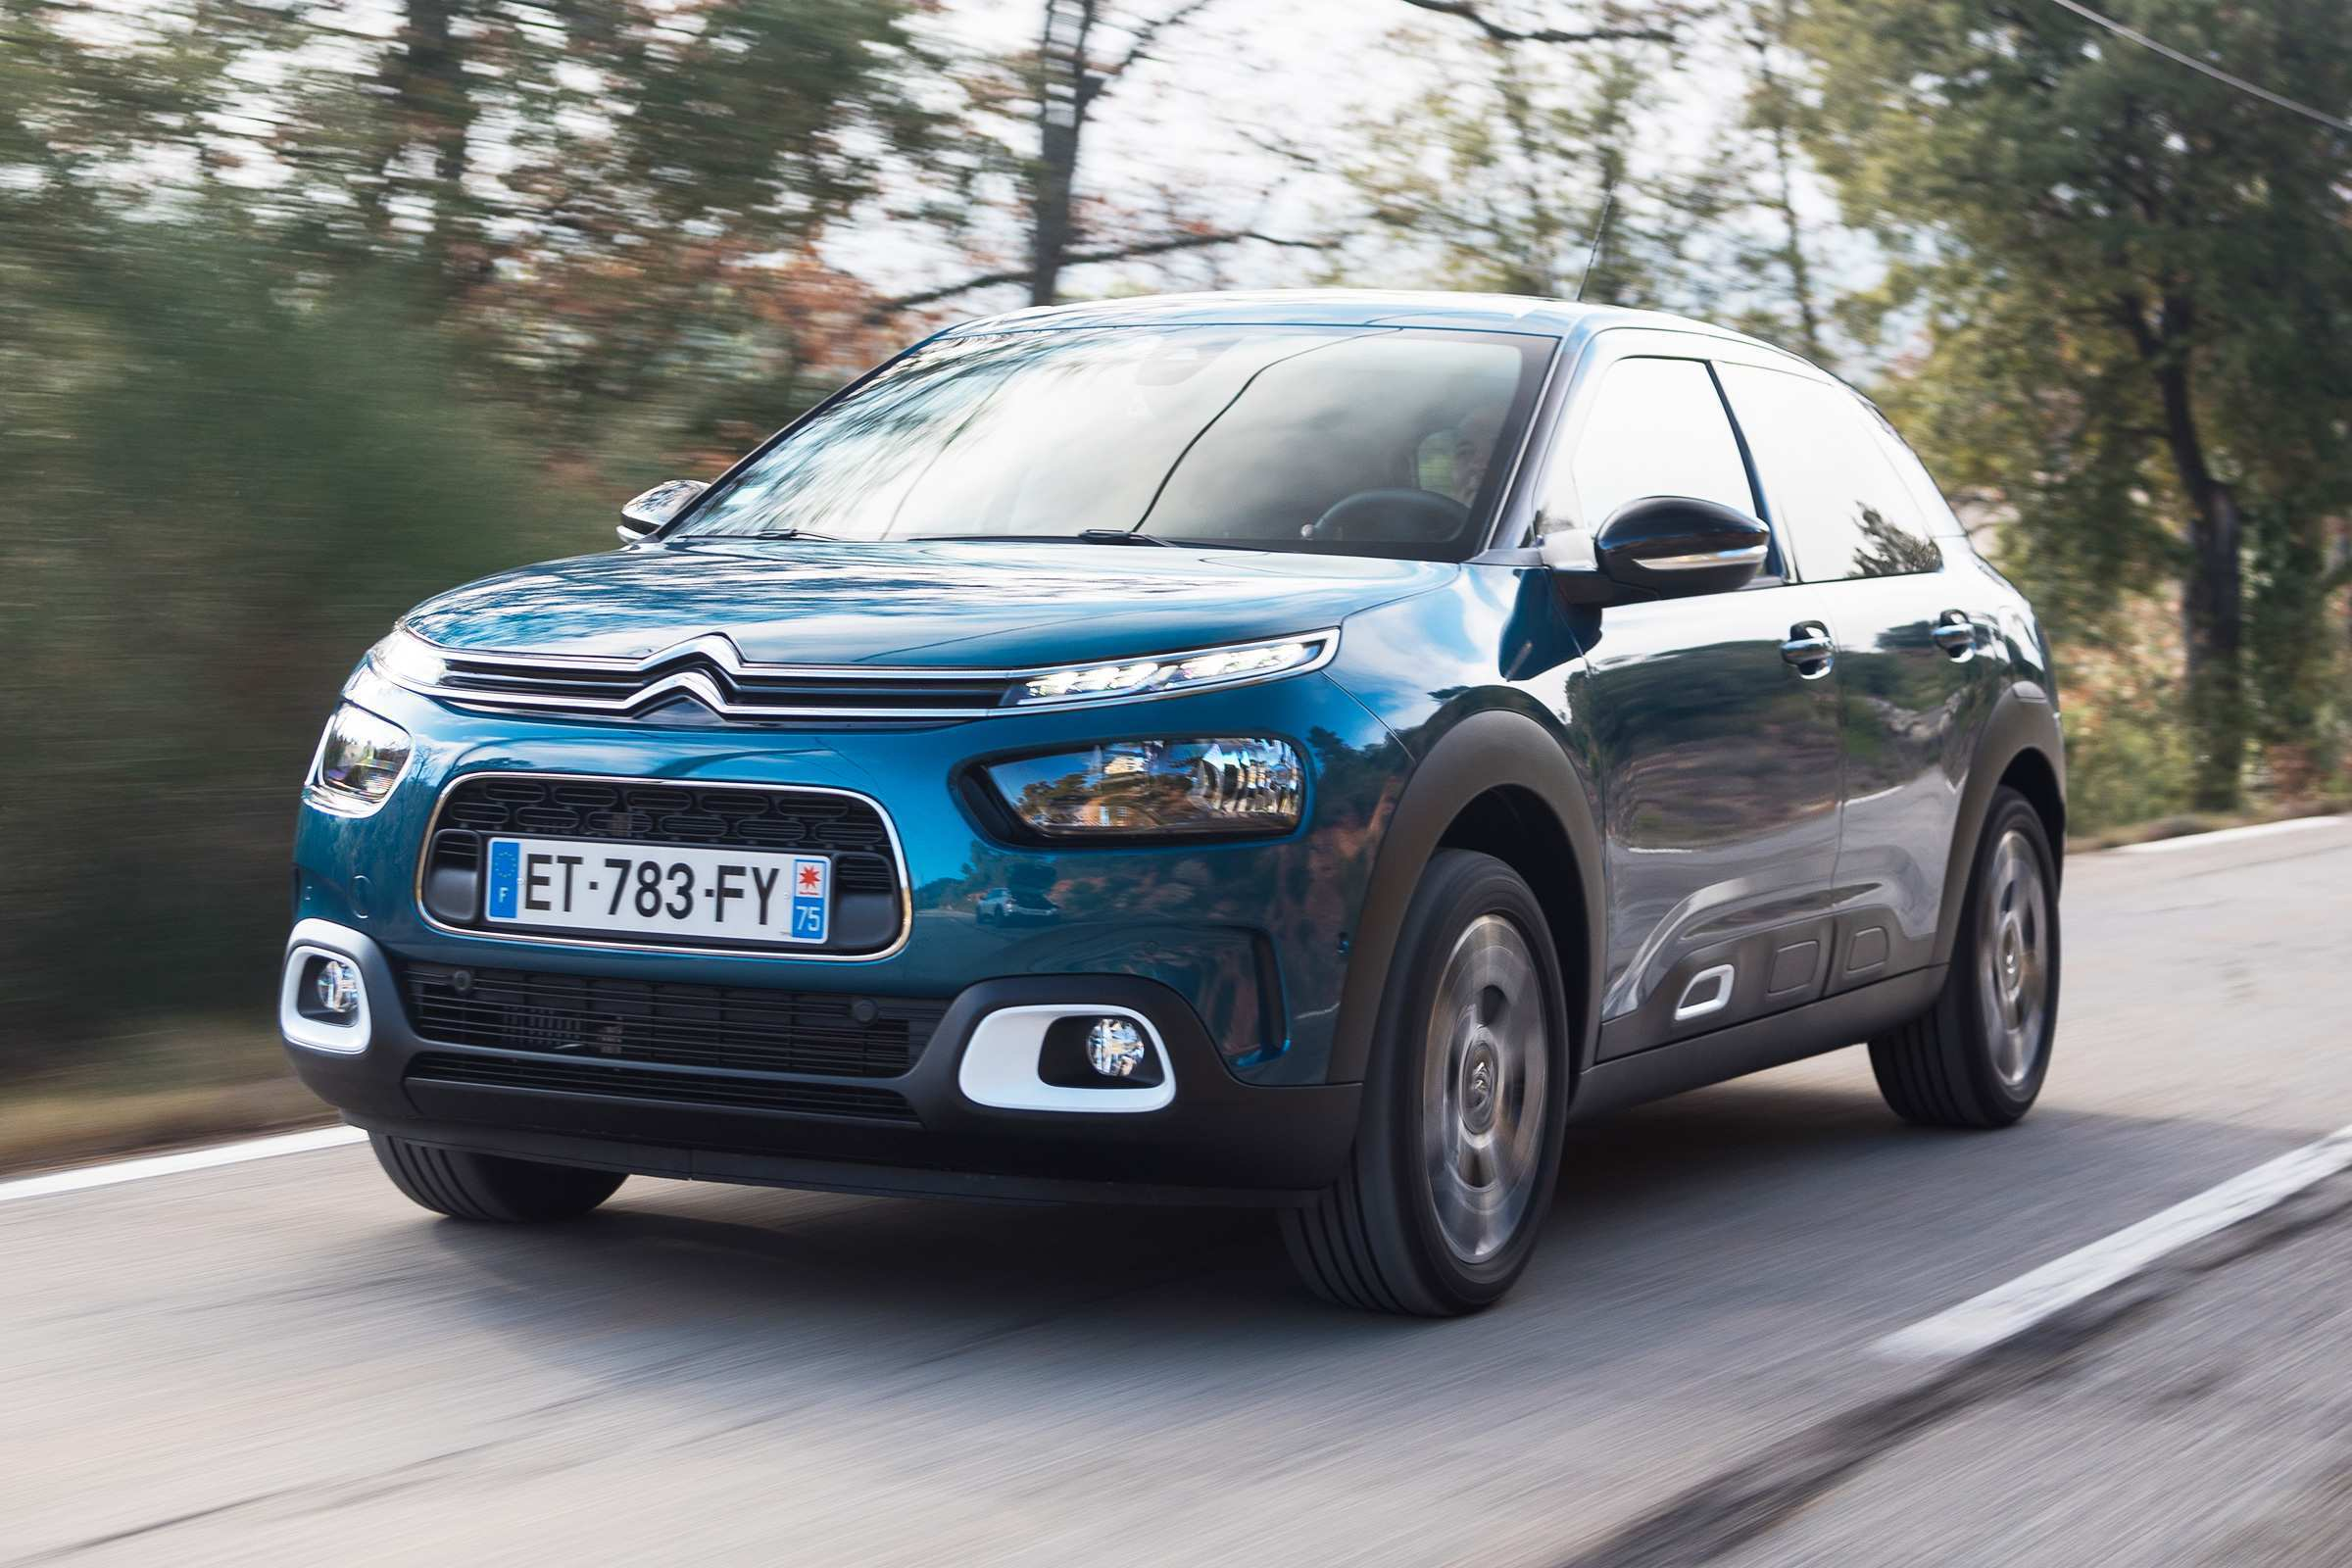 15 All New 2020 New Citroen C4 2018 Review with 2020 New Citroen C4 2018